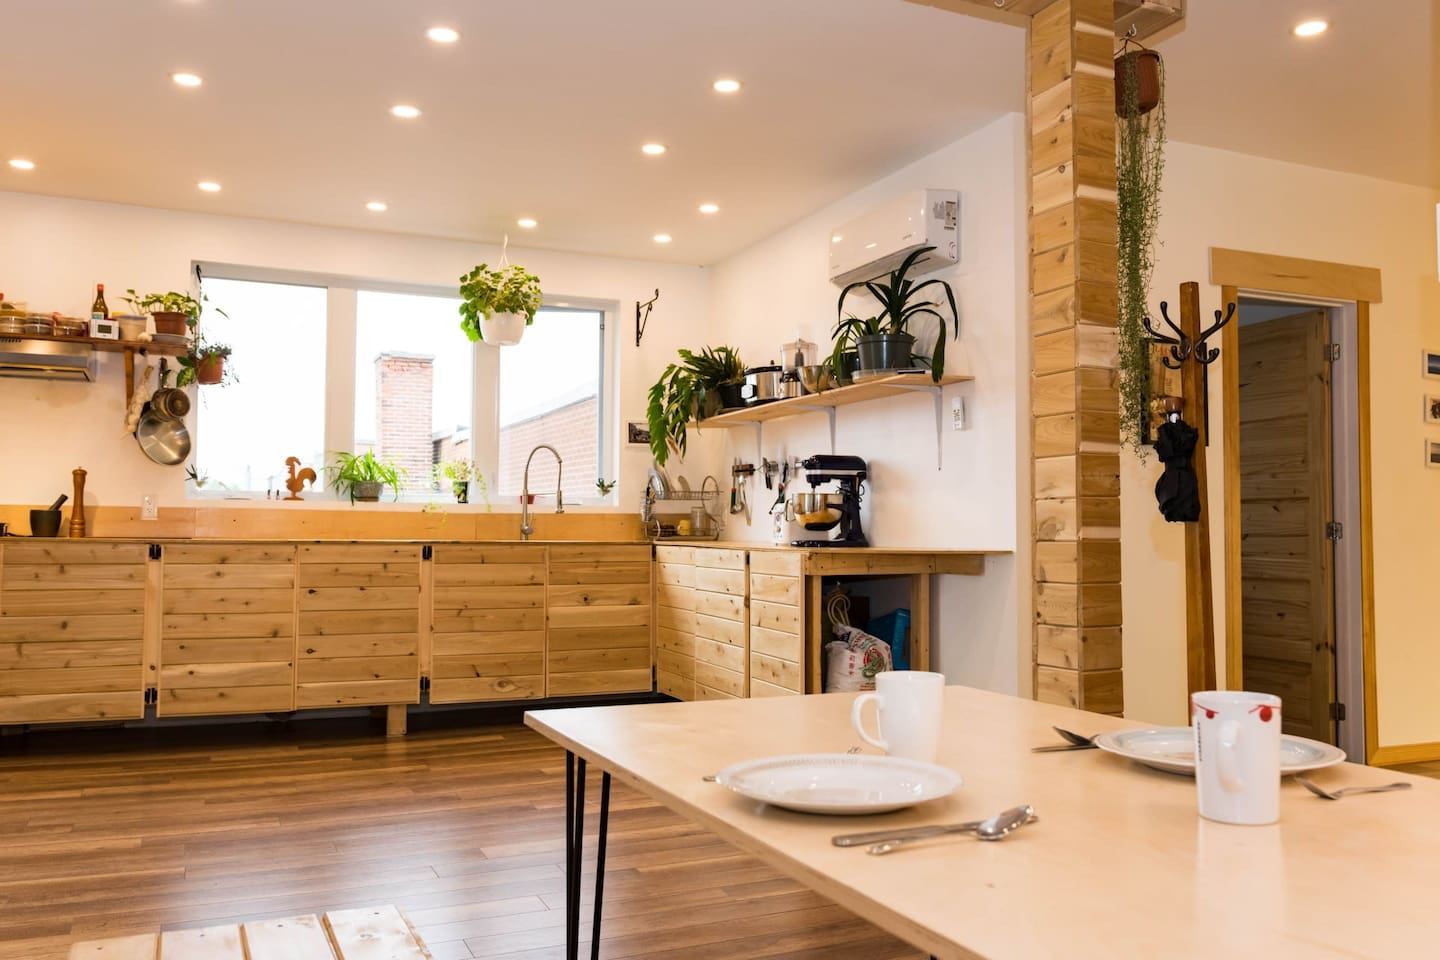 Pleasant kitchen with an eco-friendly atmosphere